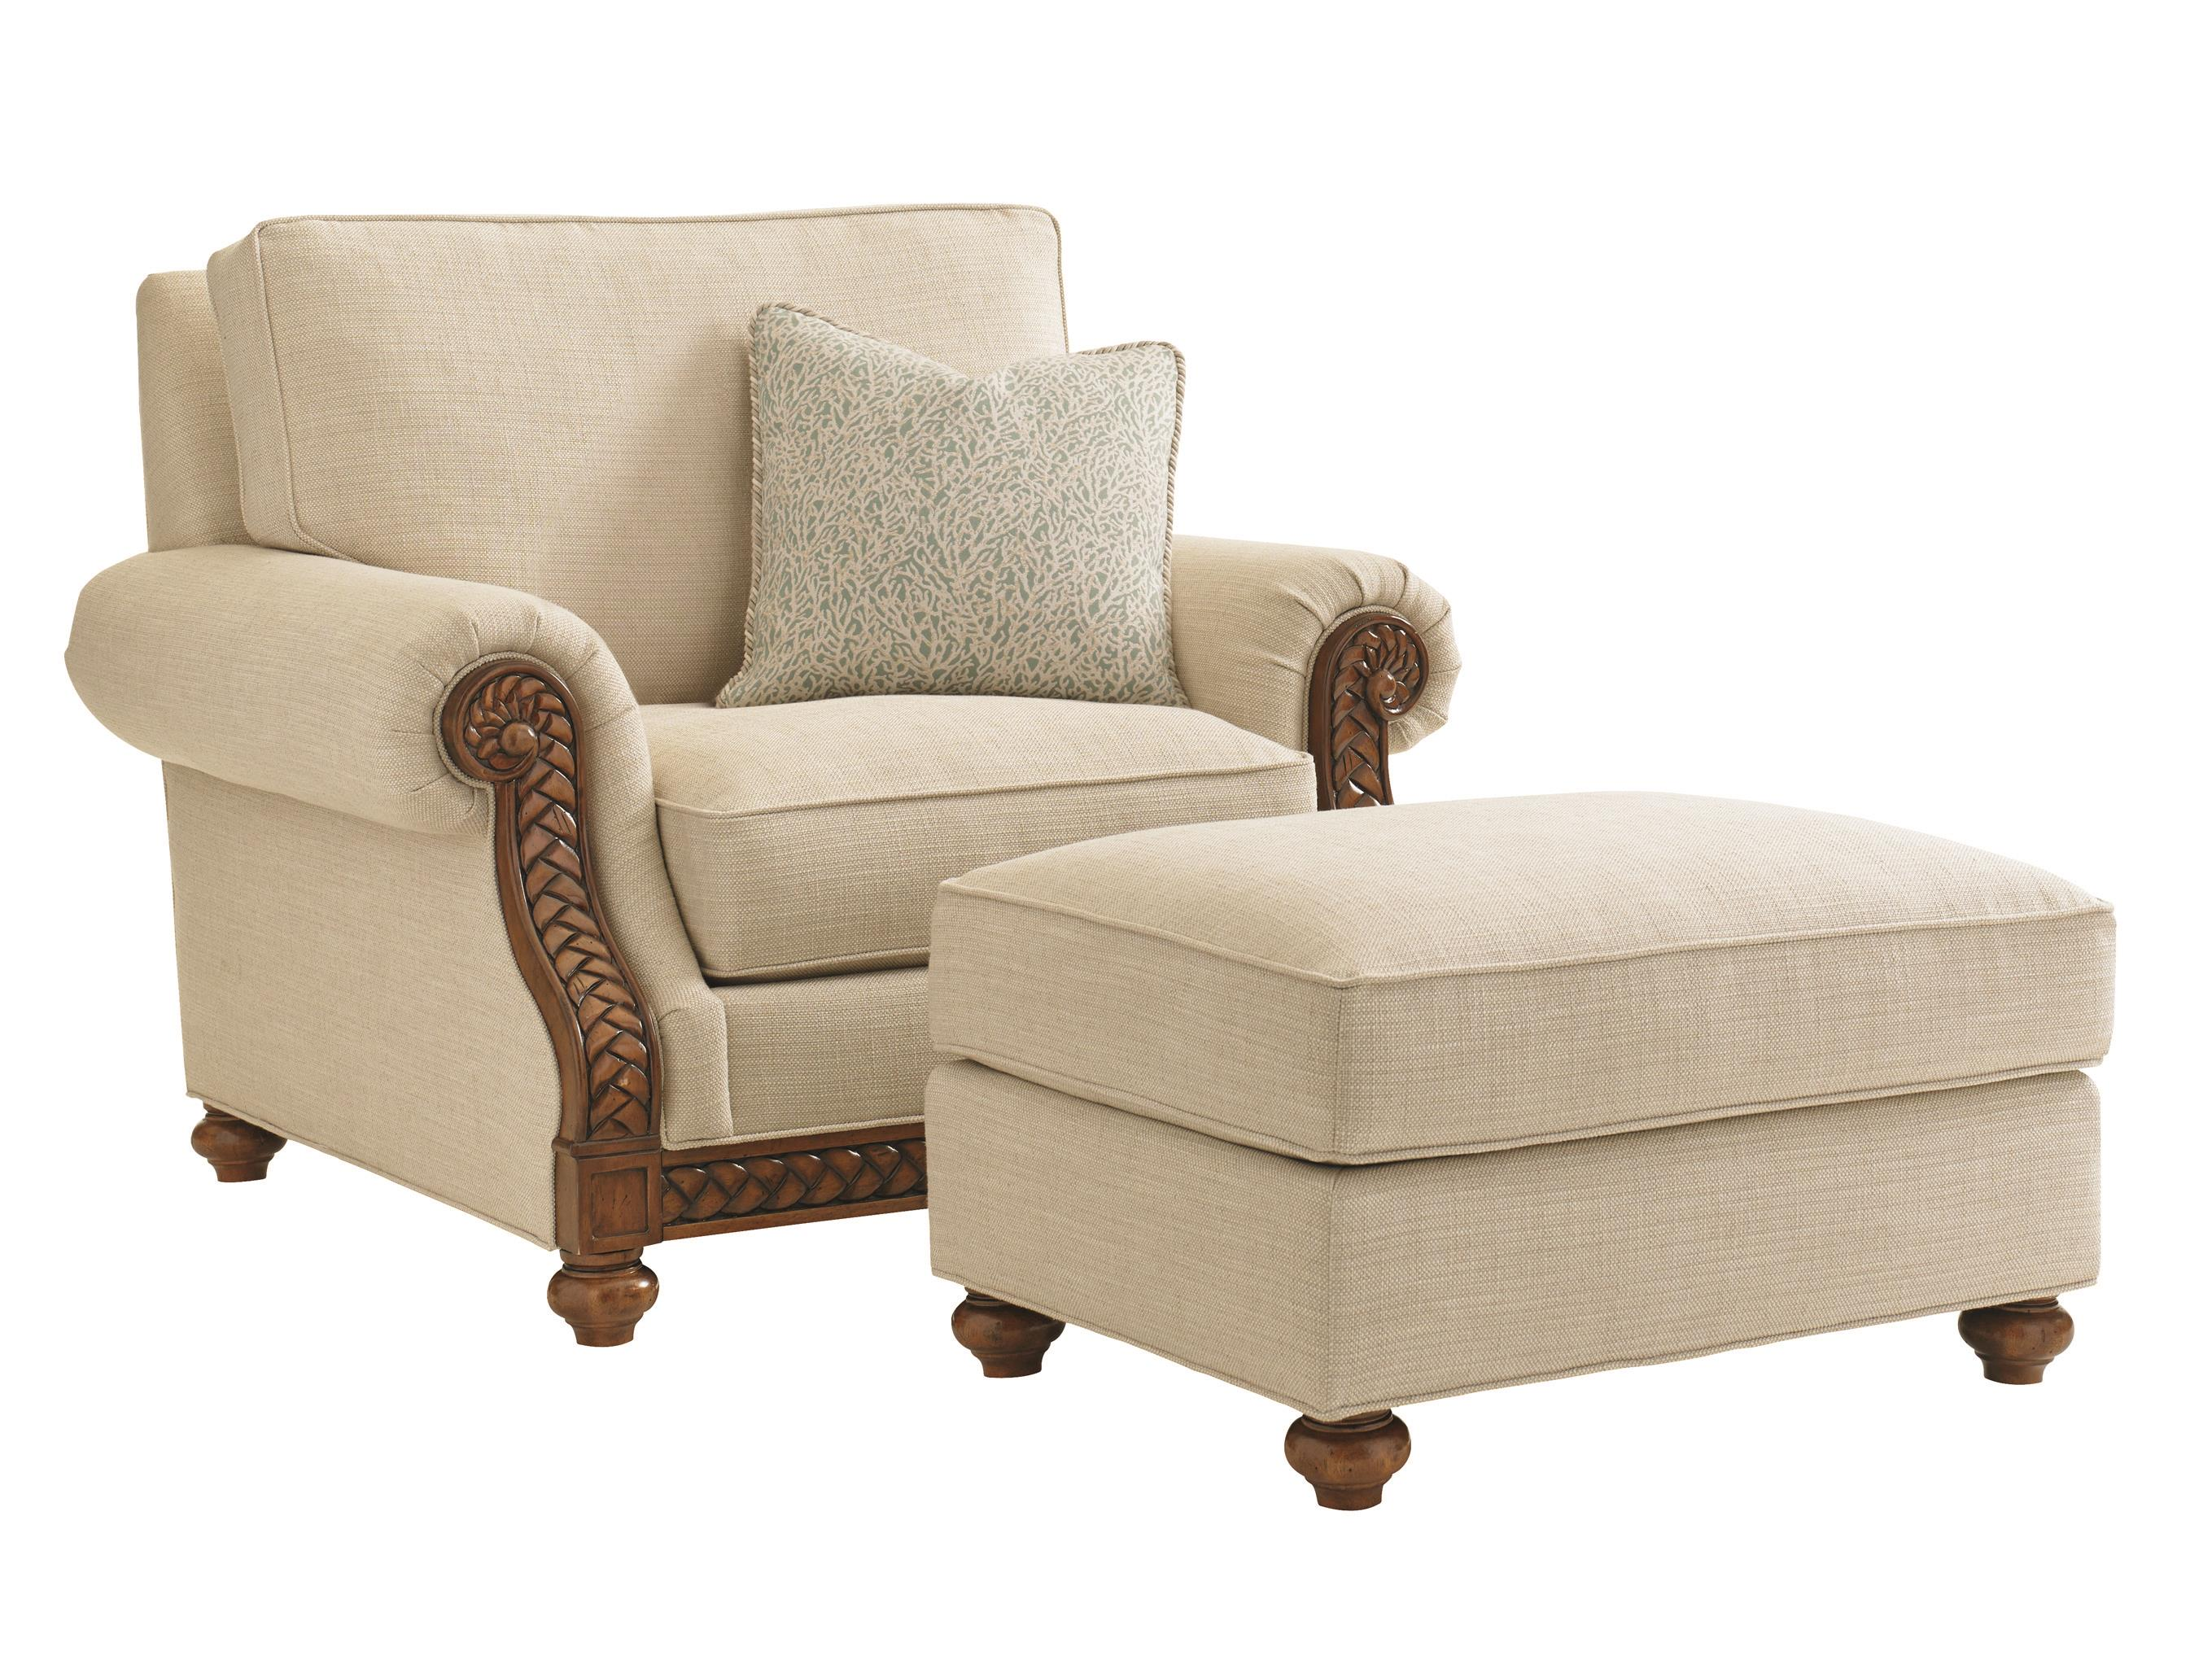 Tommy Bahama Home Bali Hai Quickship Shoreline Chair and Ottoman Set - Item Number: 7844-11-02+7844-44-02